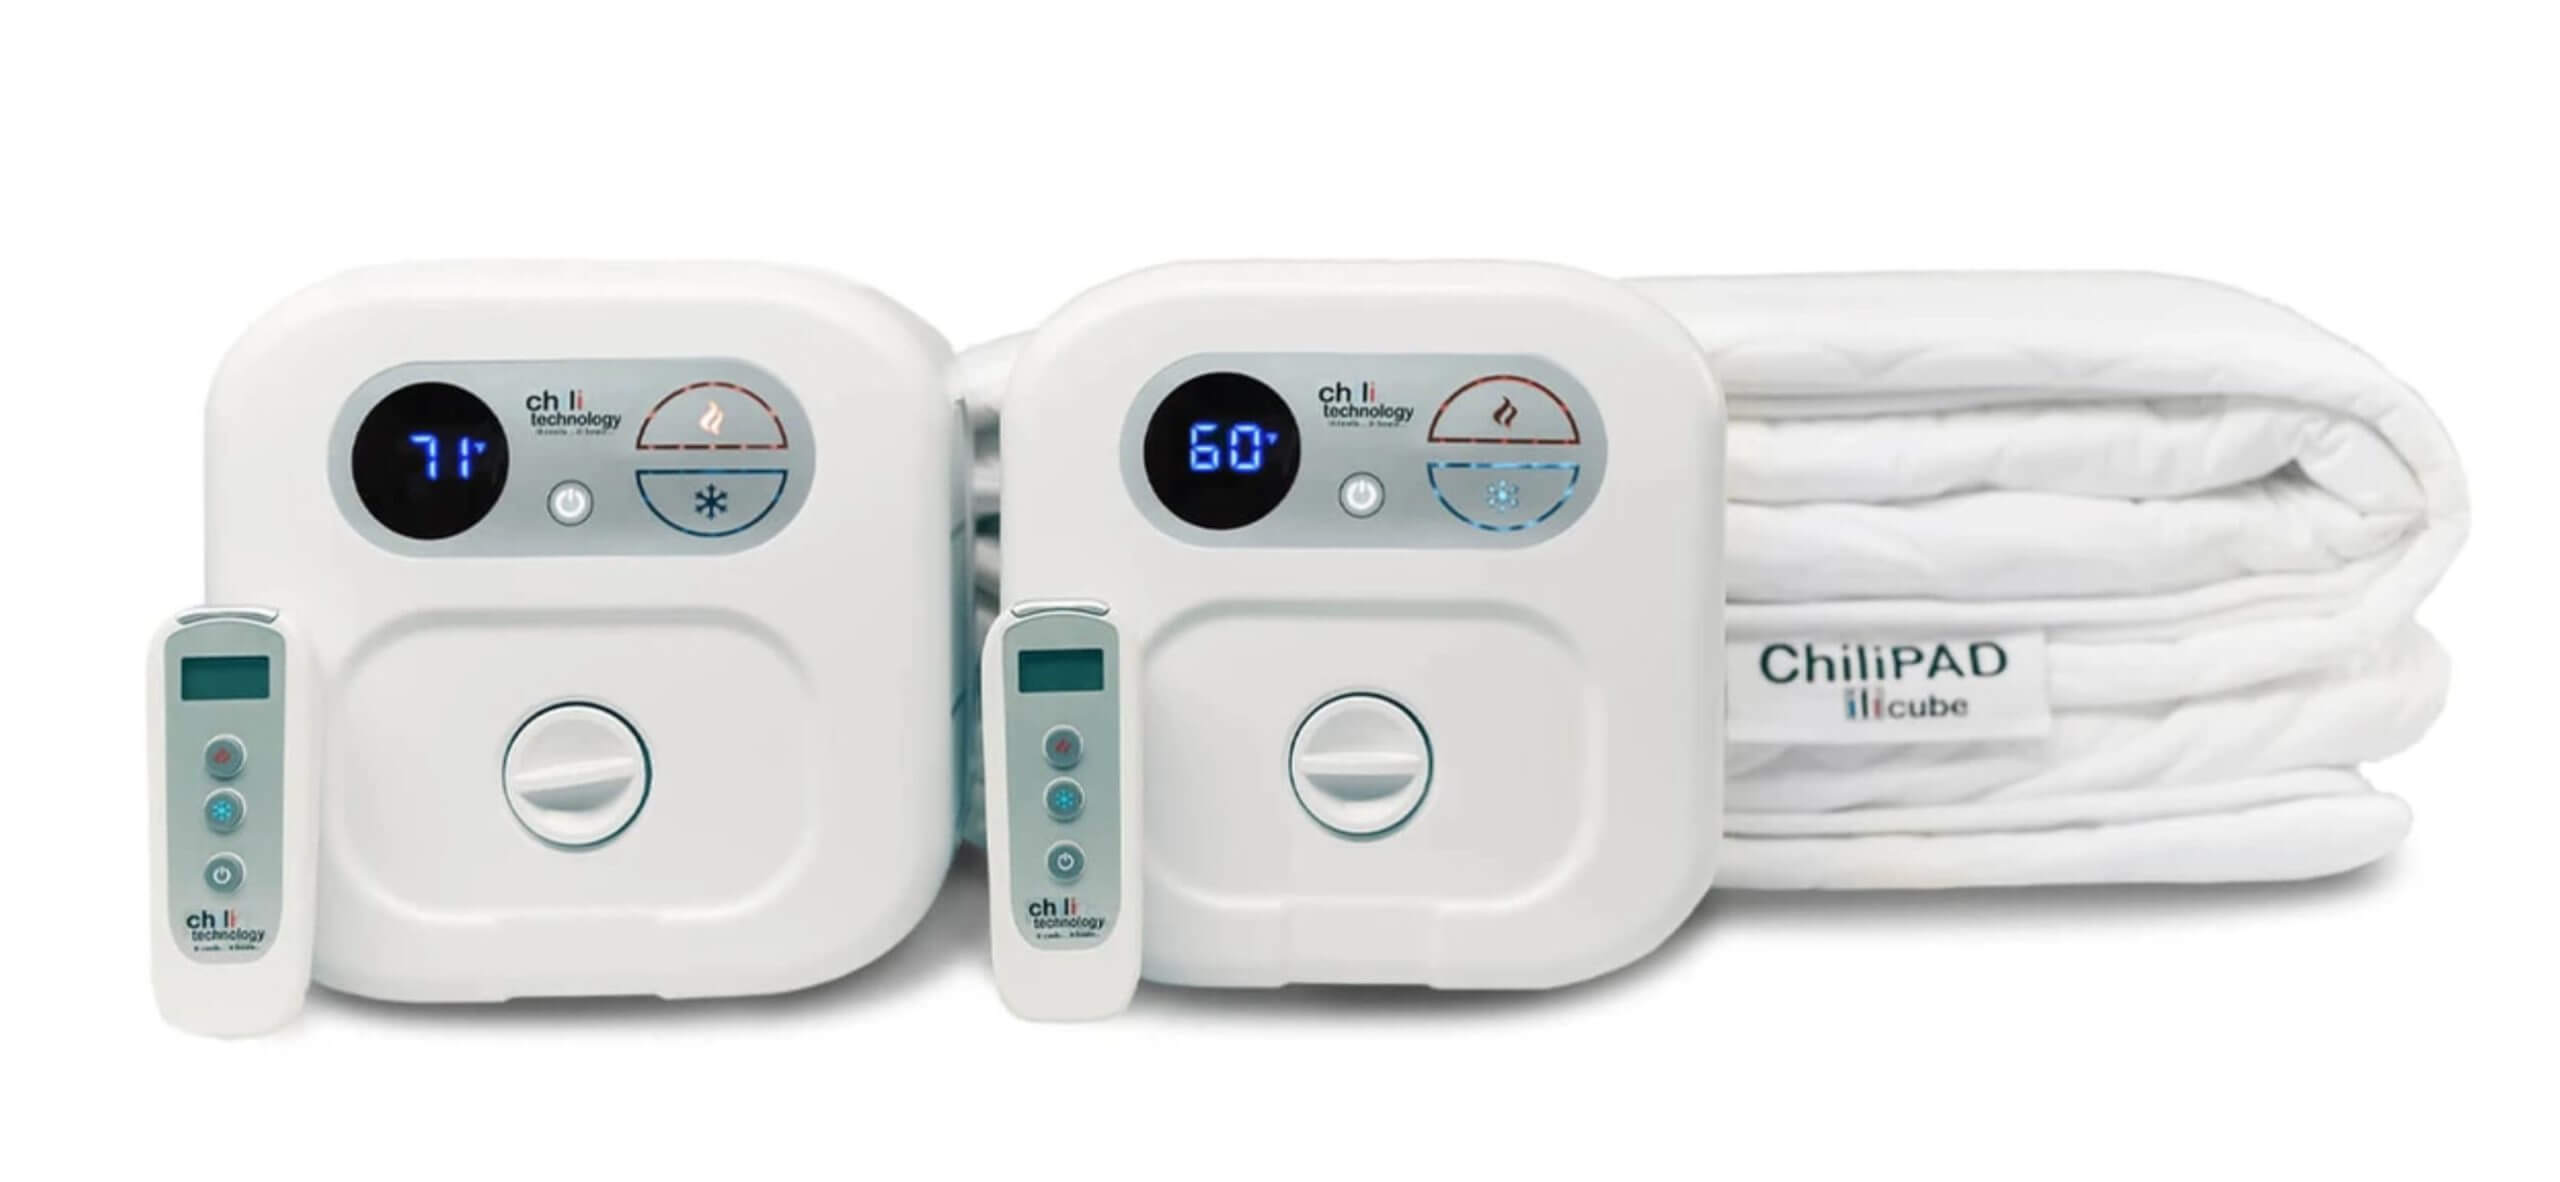 Hands-on chiliPAD Review